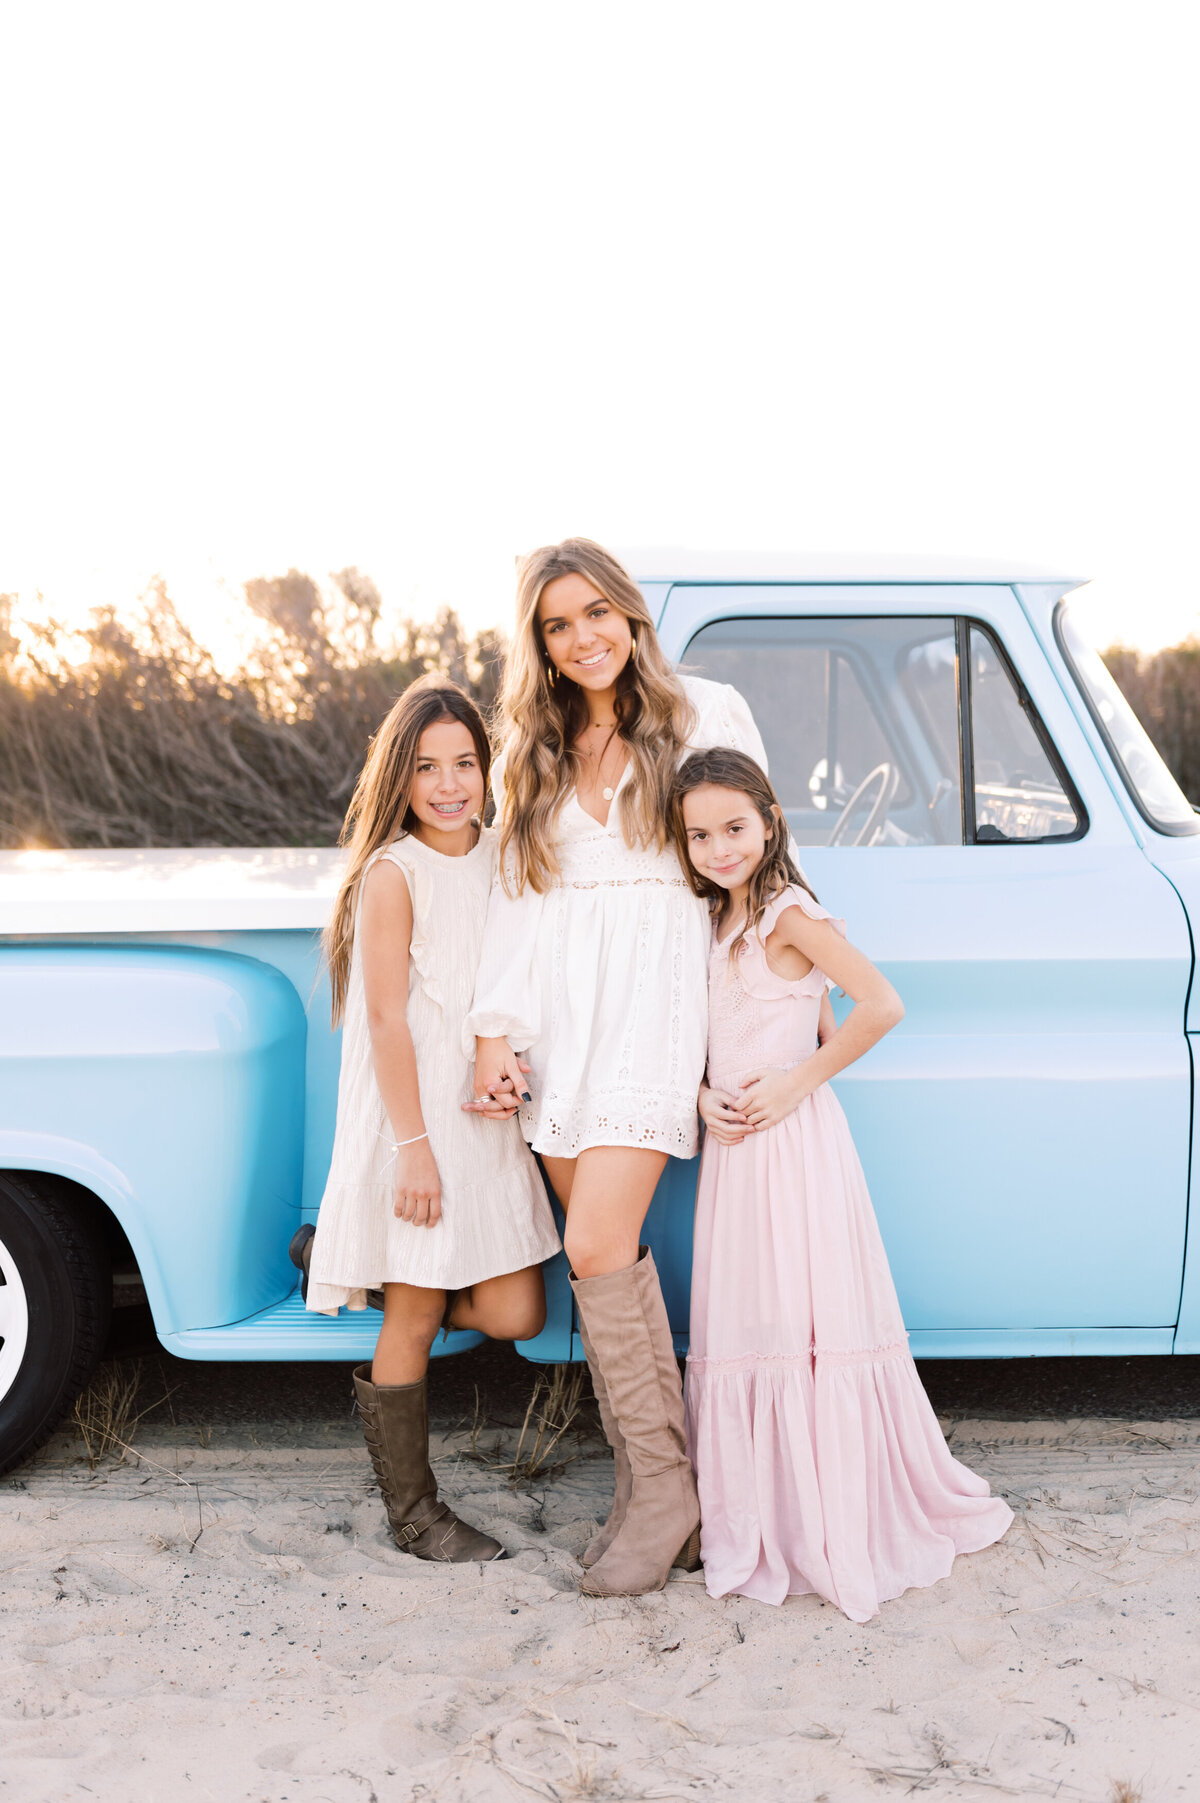 family-photographer-virginia-beach-tonya-volk-photography-63